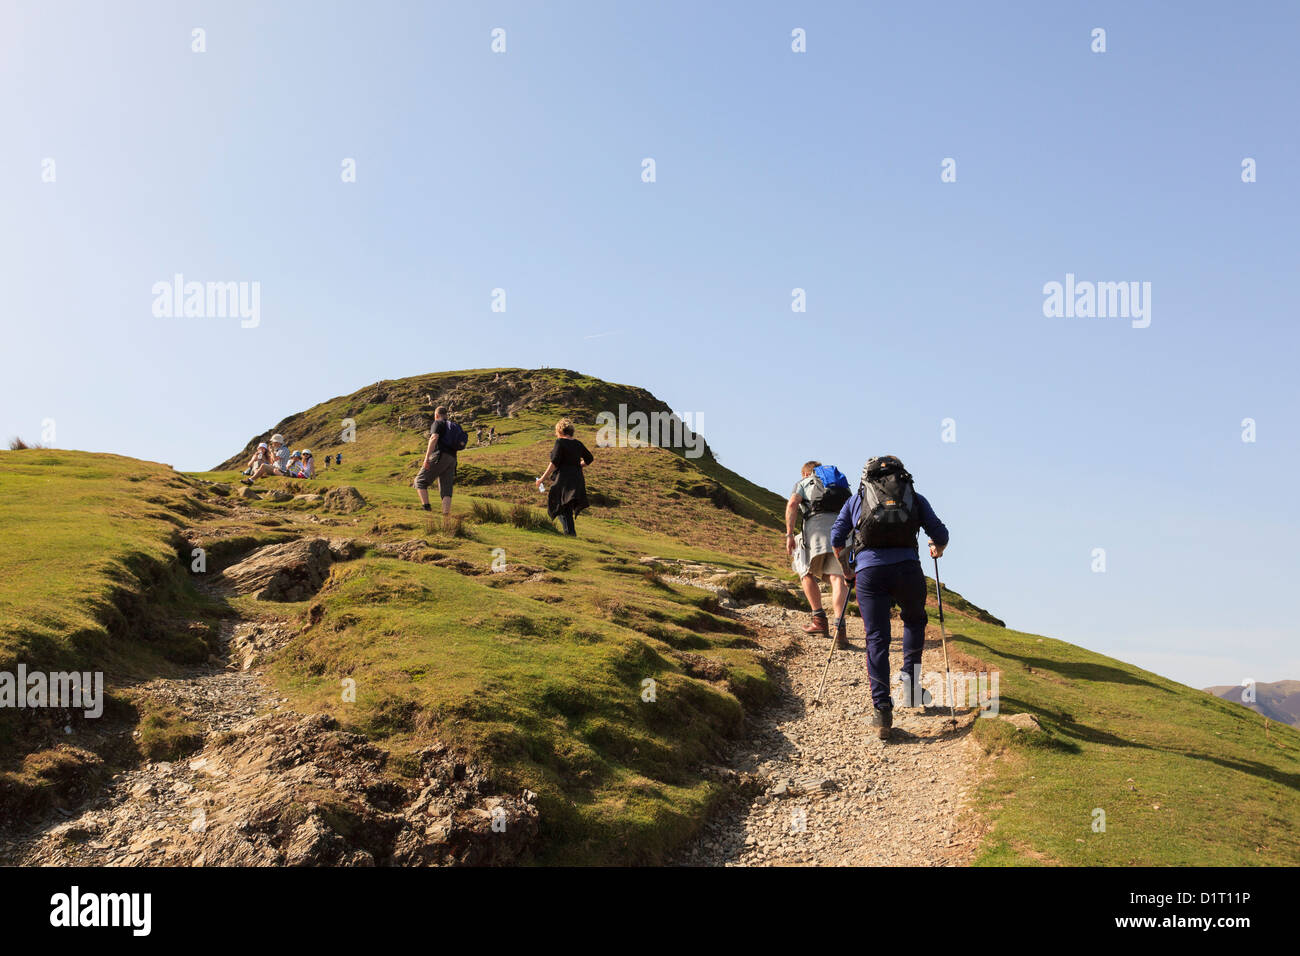 People walking on worn eroded path up Catbells mountain ridge in Lake District National Park on a sunny weekend - Stock Image